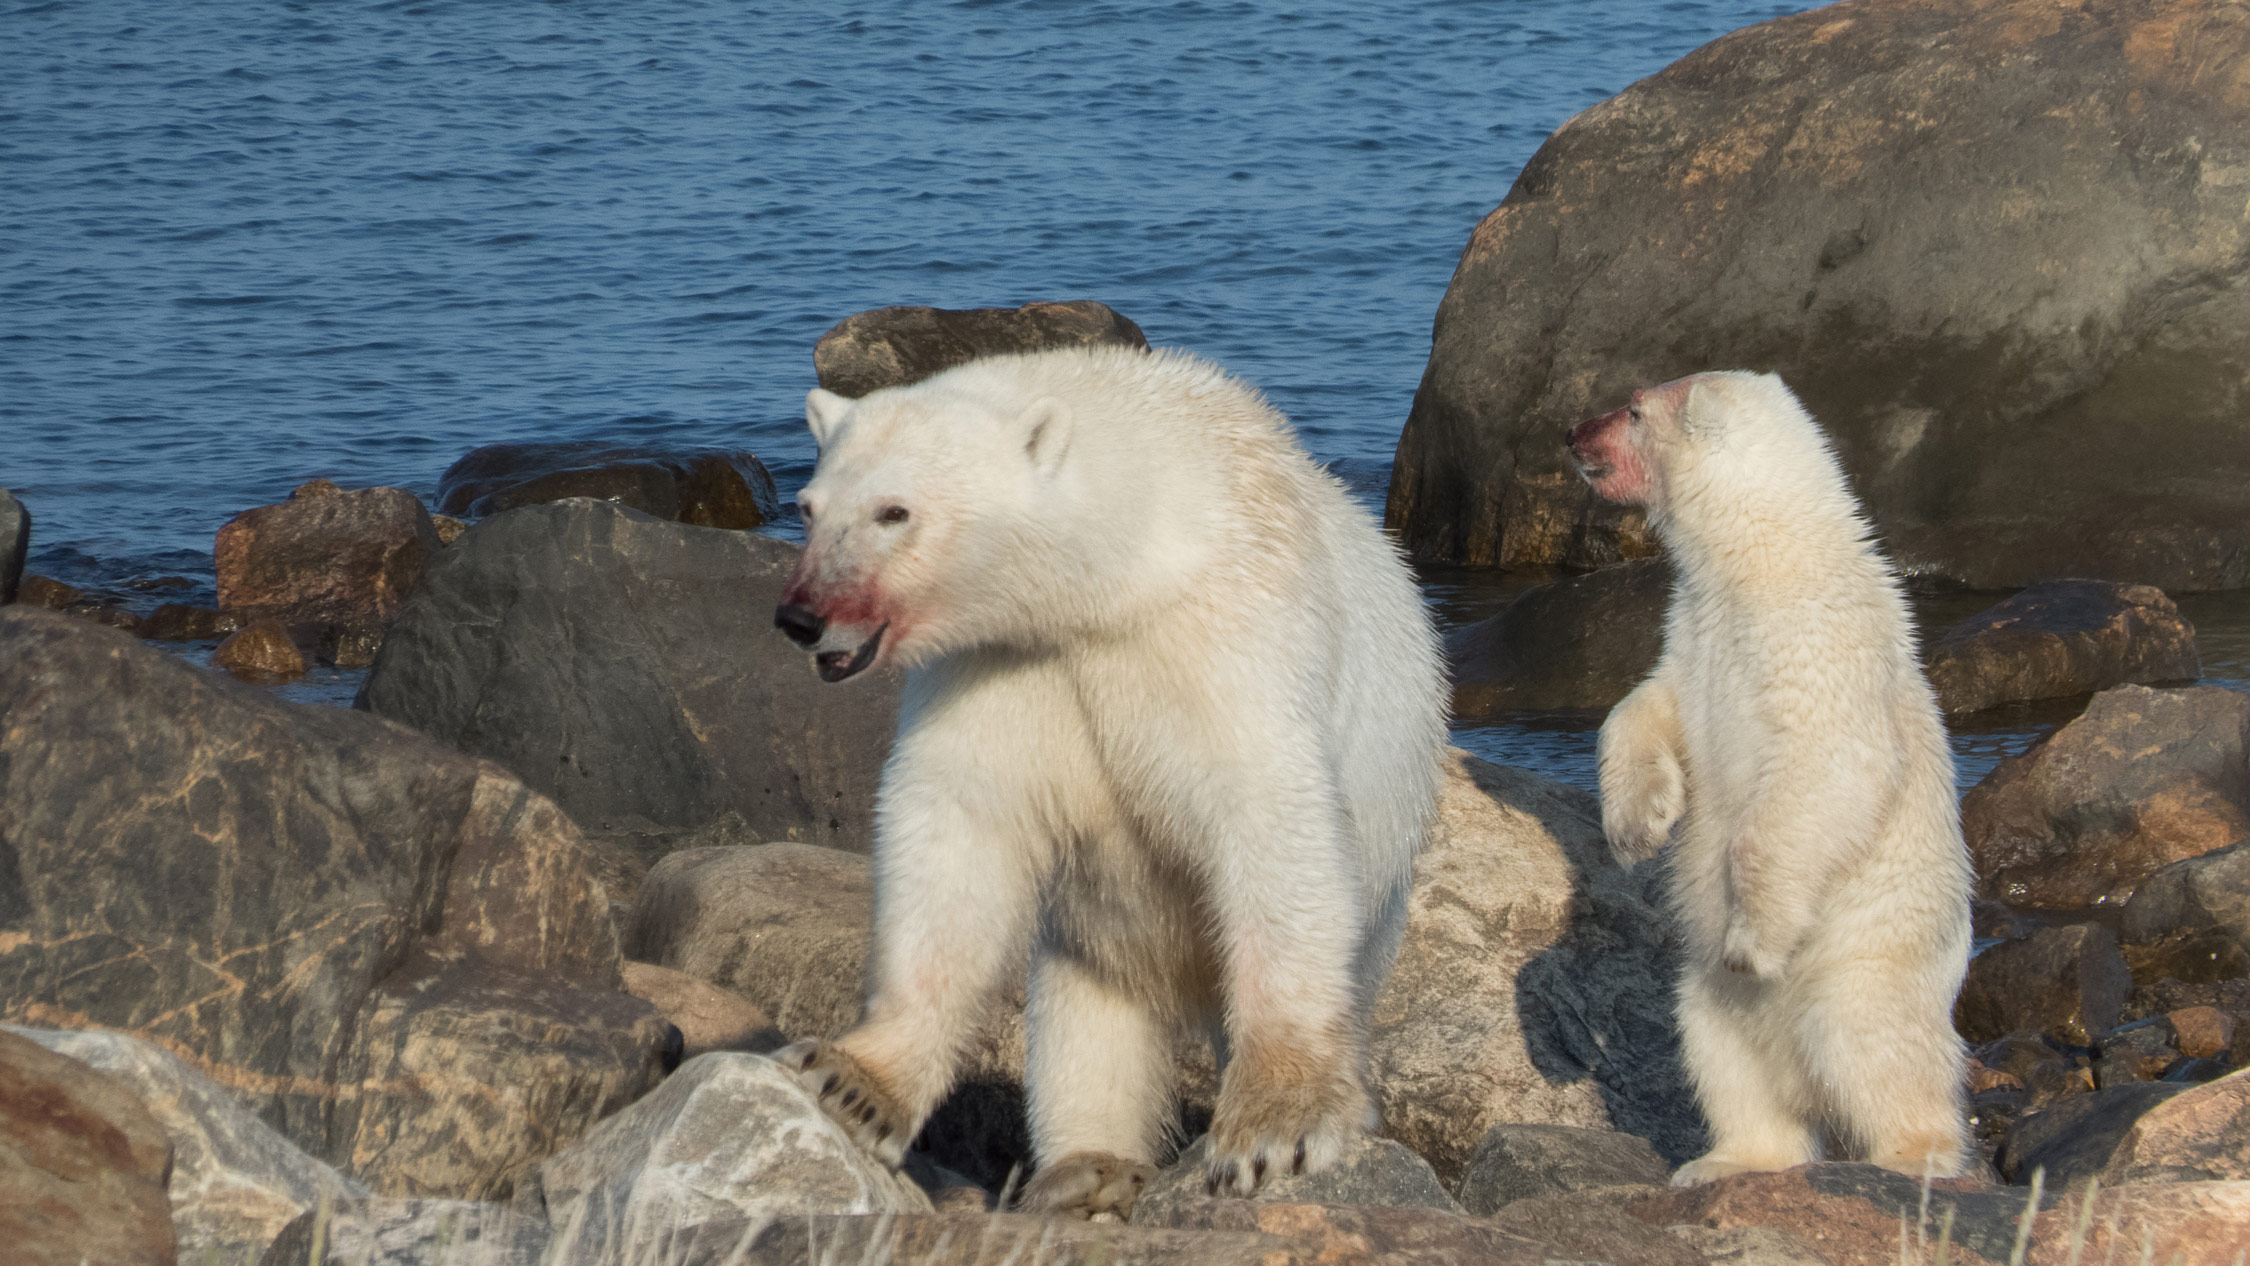 A polar bear mother and cub.